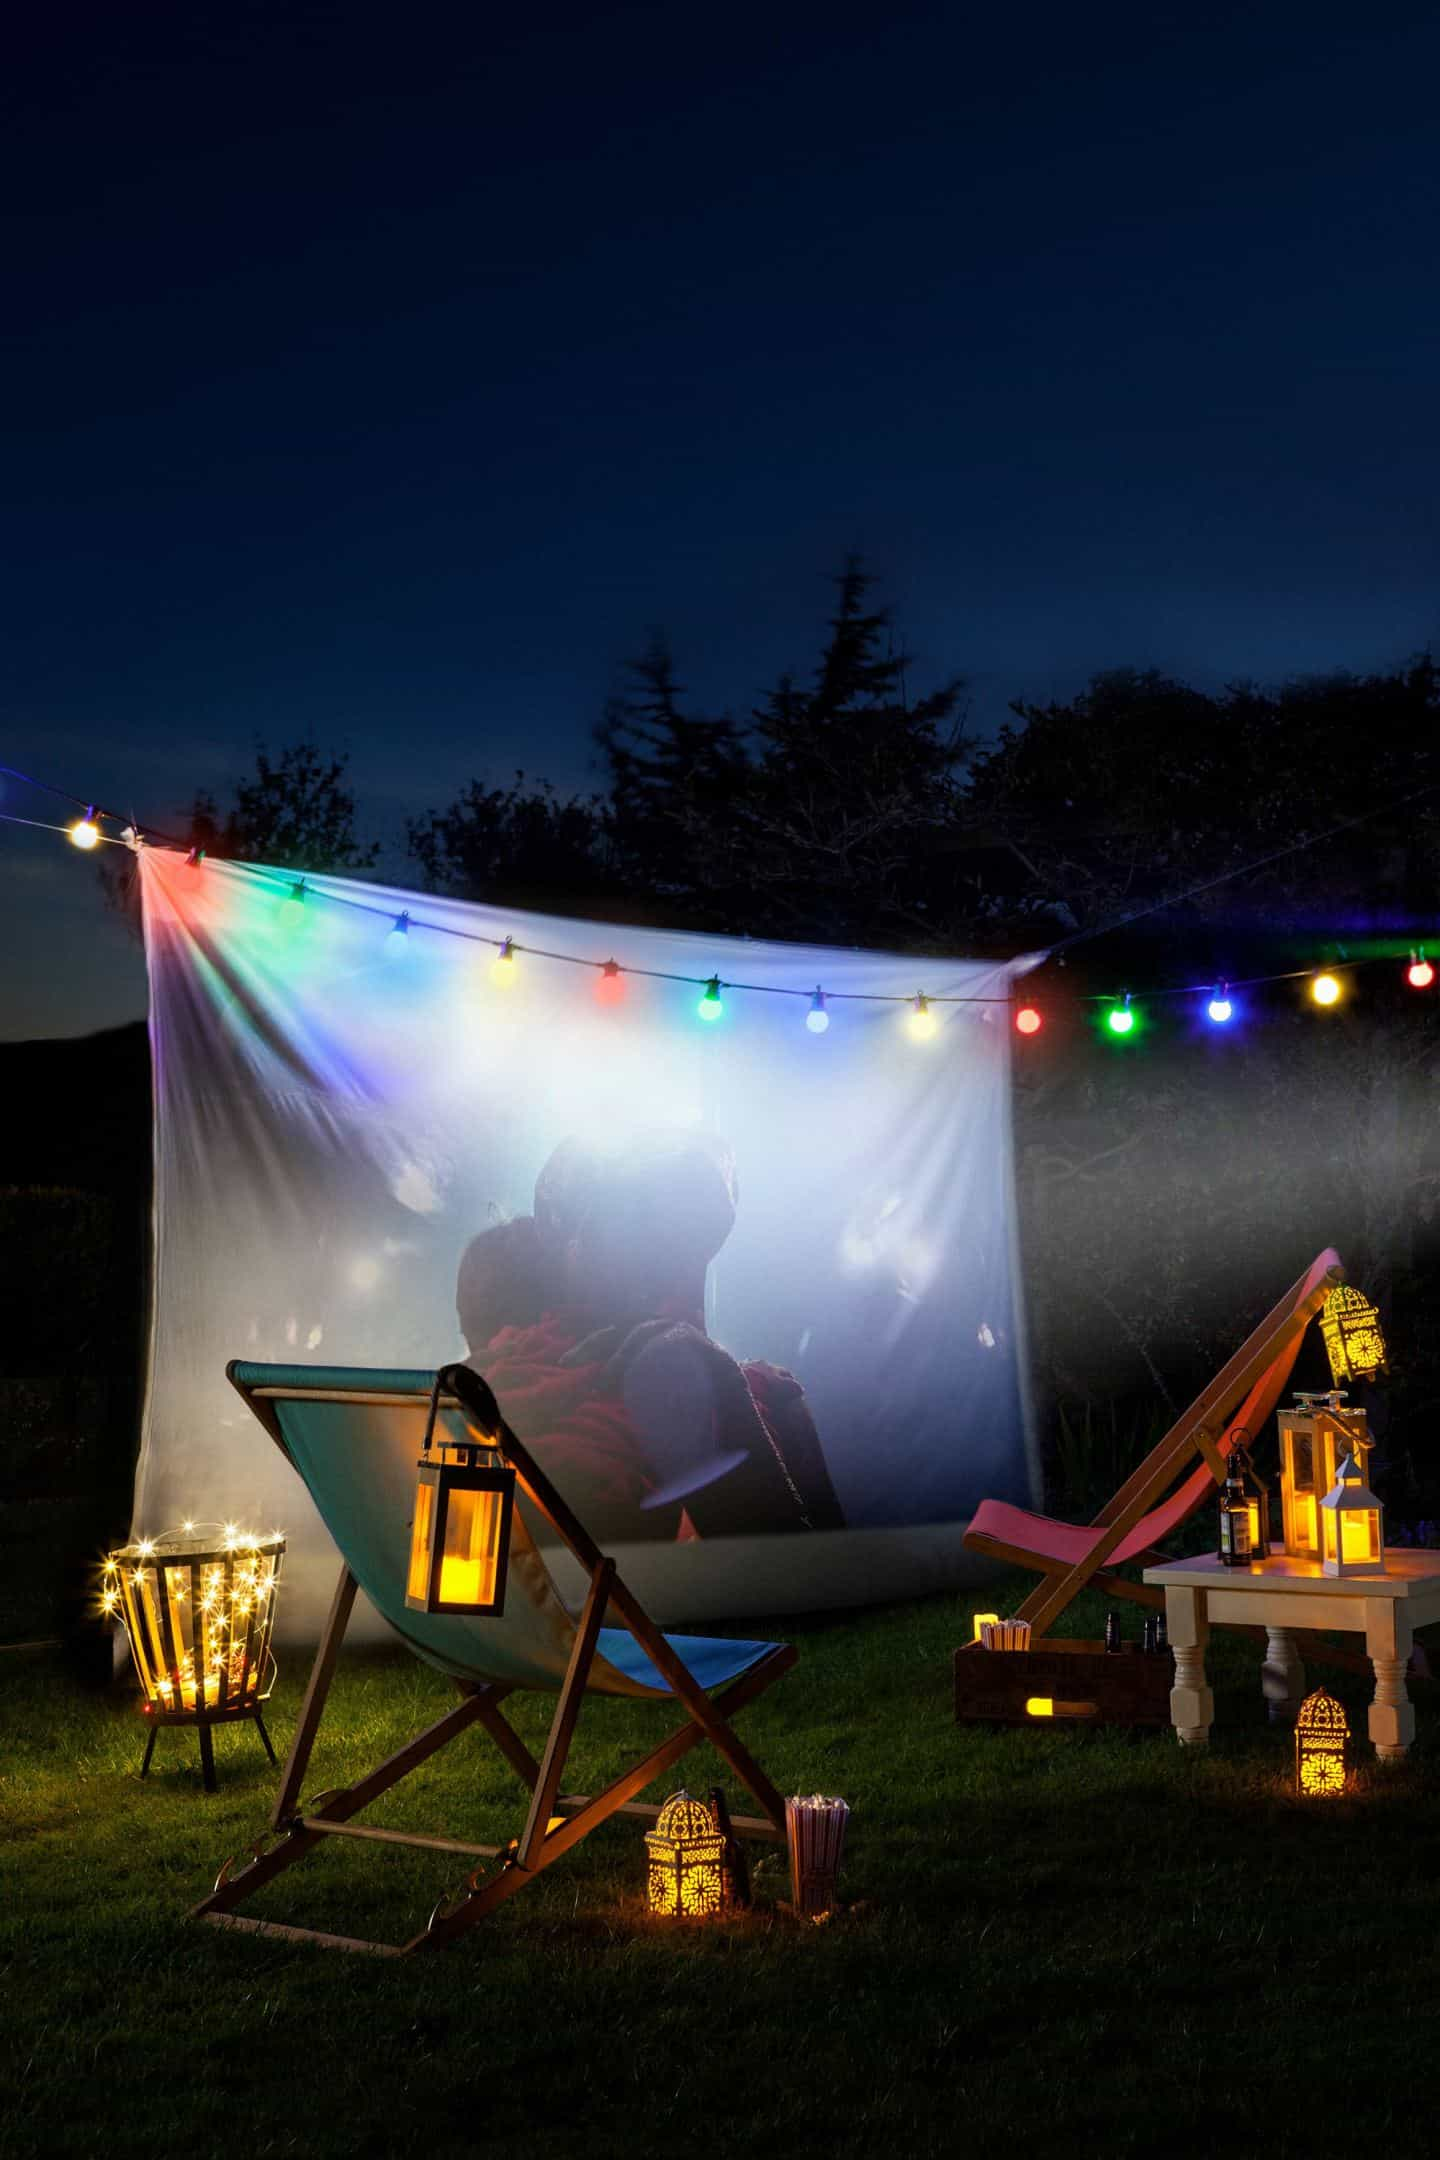 An outdoor movie screening in the perfect activity for your summer staycation in your garden